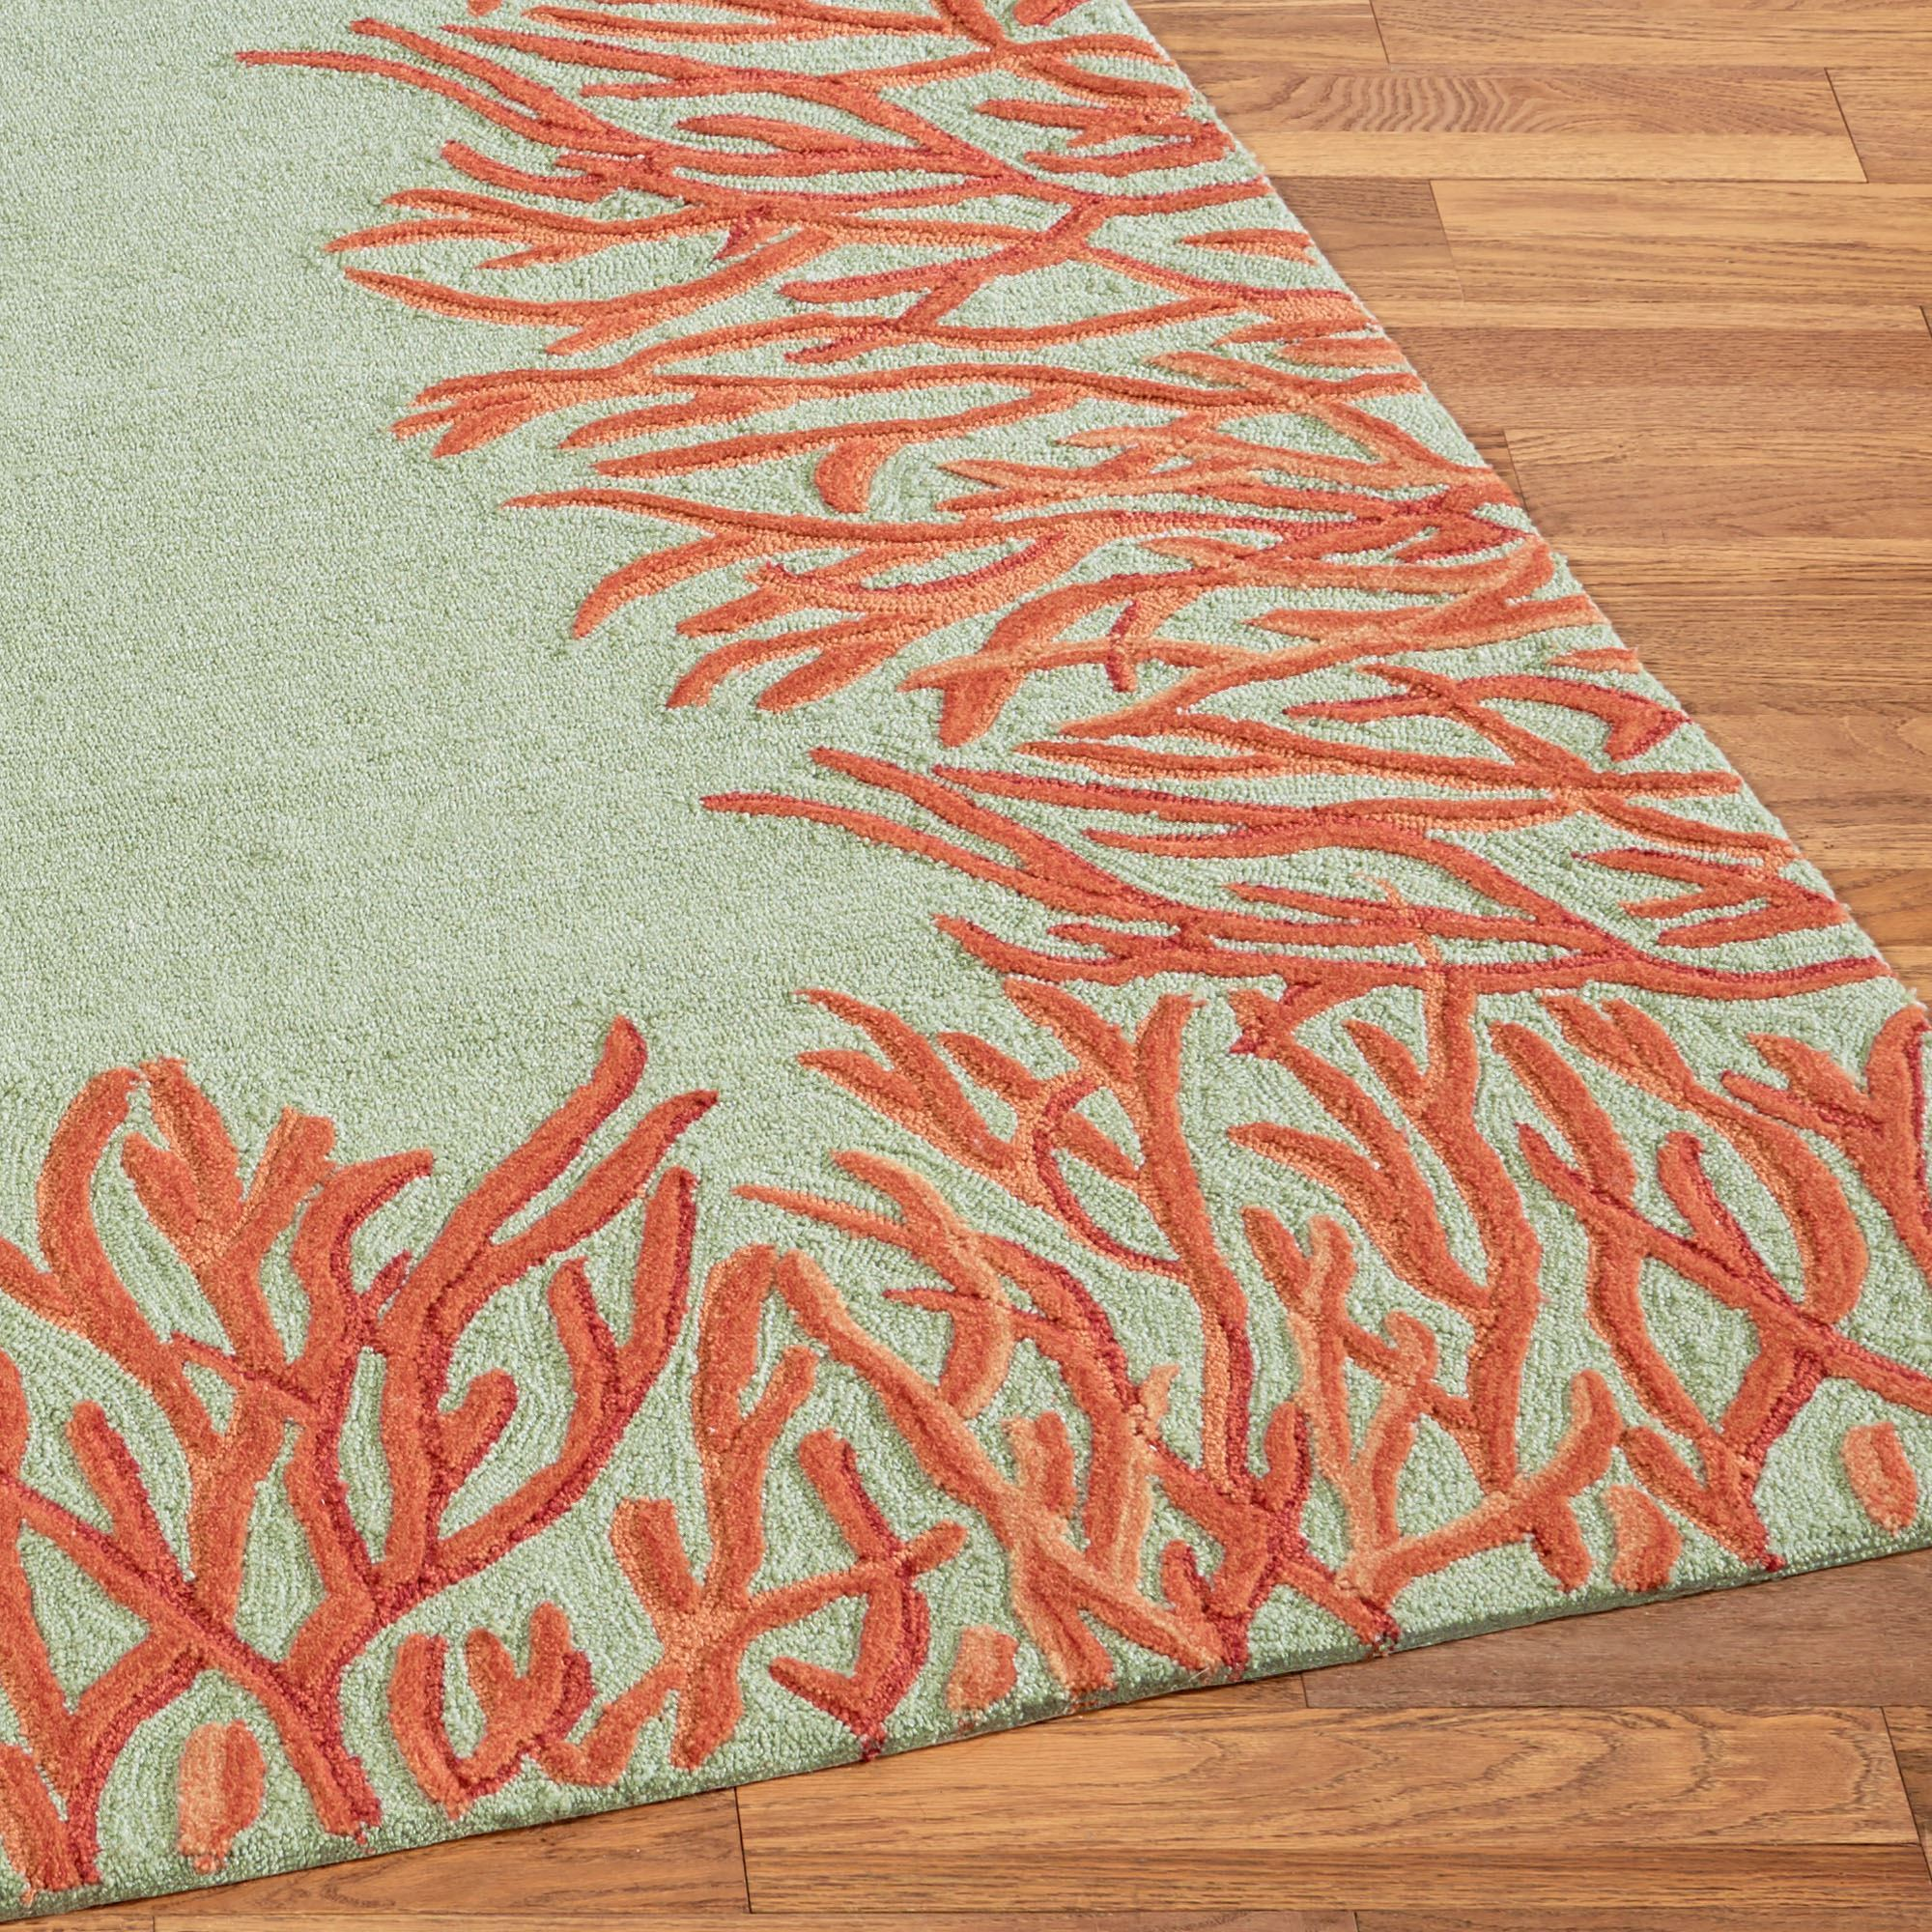 diy at departments coral w bq colours b rug prd l georgette q orange rugs